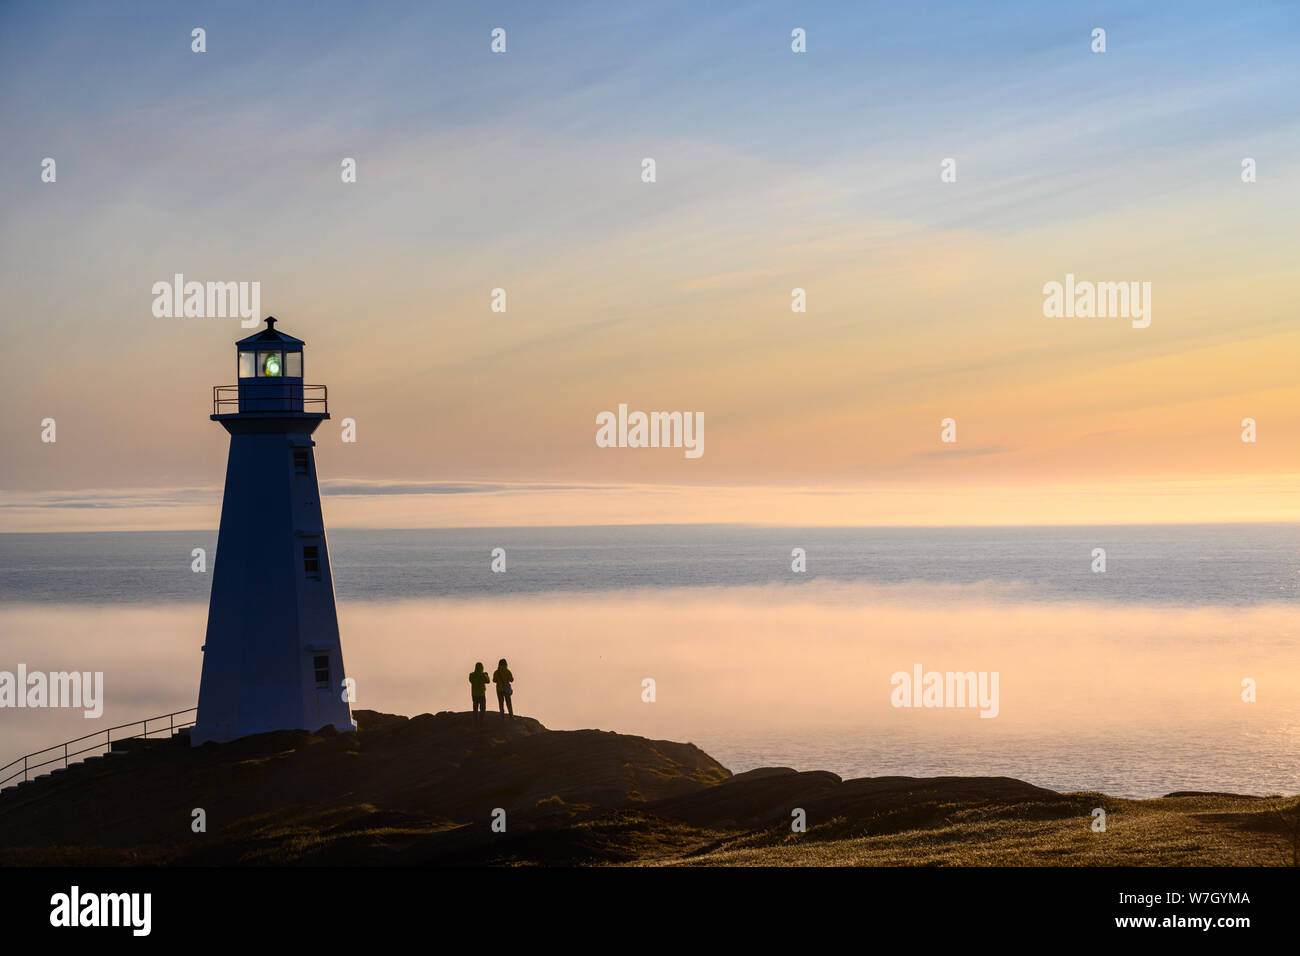 Visitors at Cape Spear Lighthouse with fog bank over the Atlantic Ocean;  St. John's, Newfoundland, Canada. Stock Photo